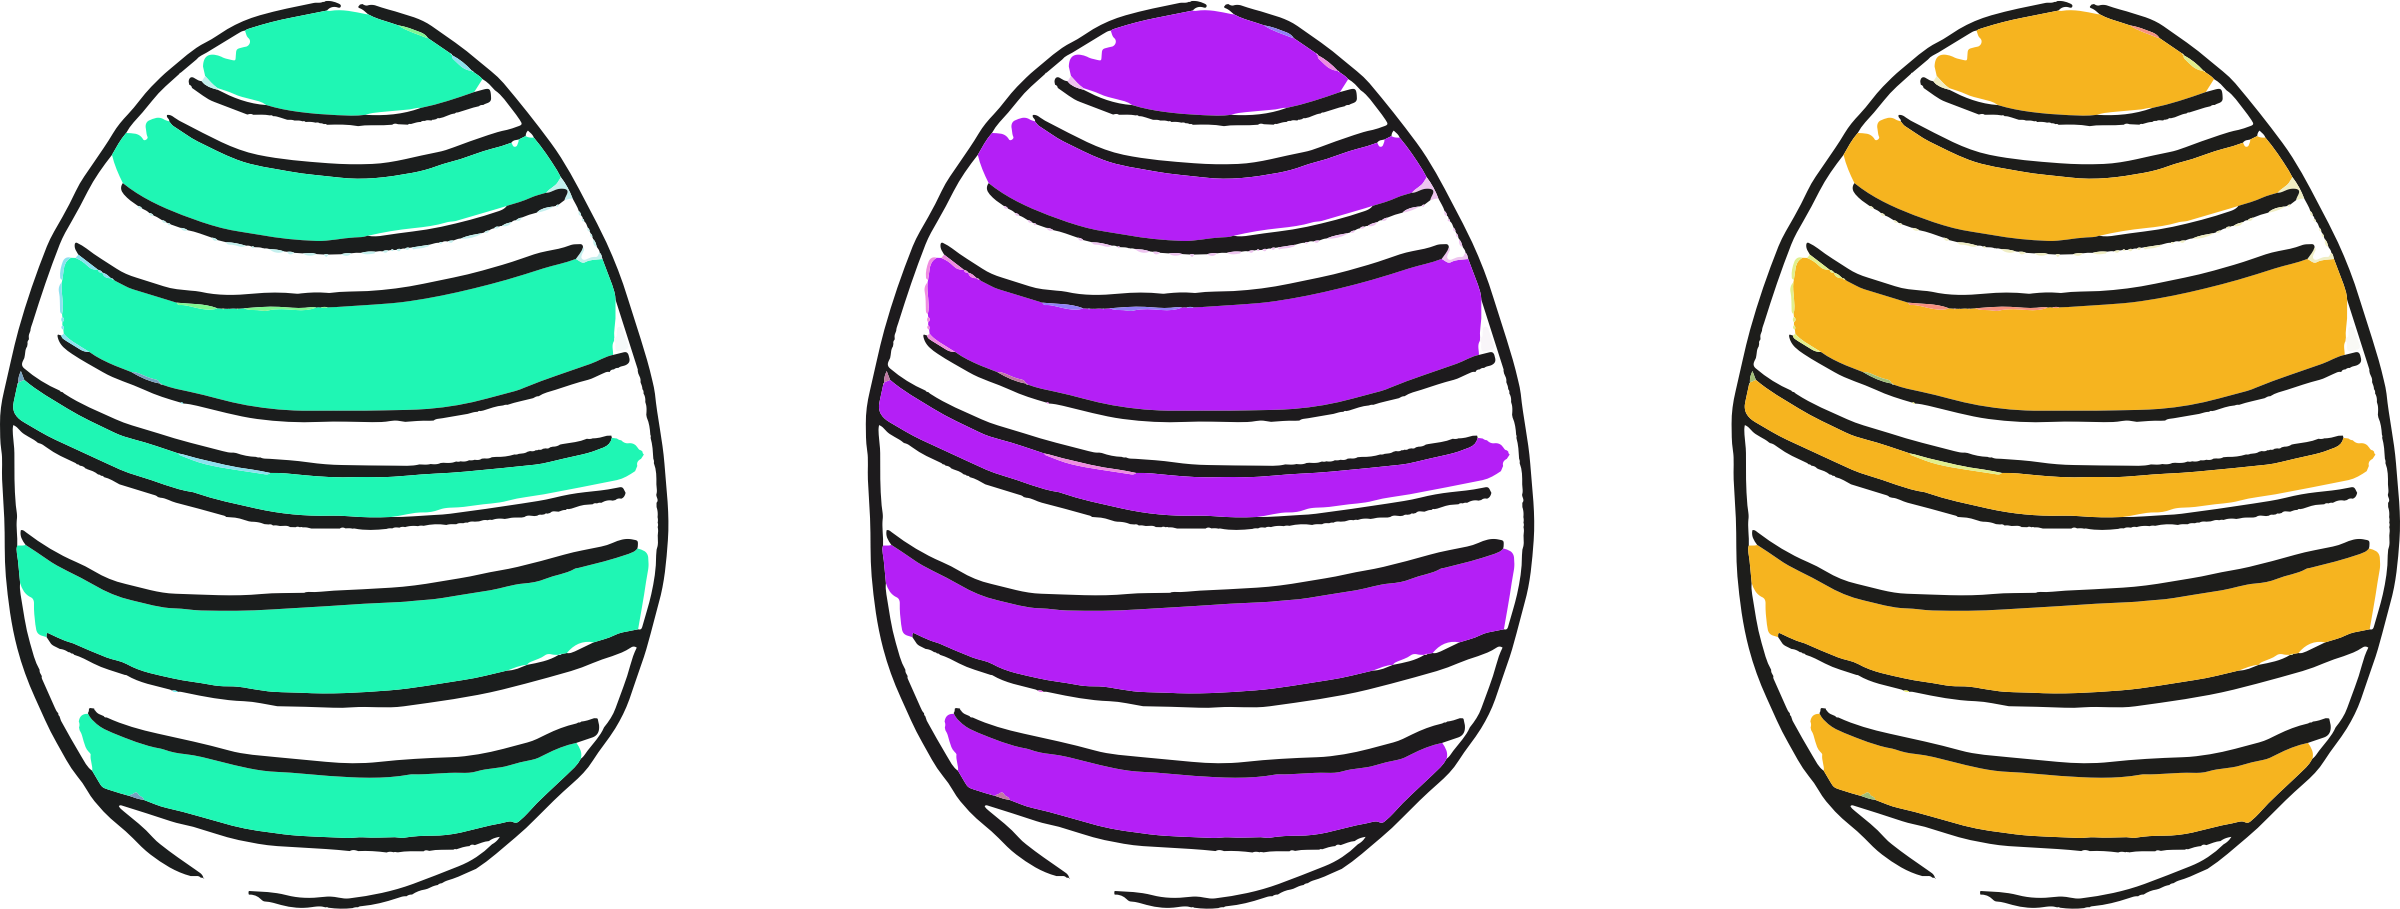 Easter eggs 7 by Firkin